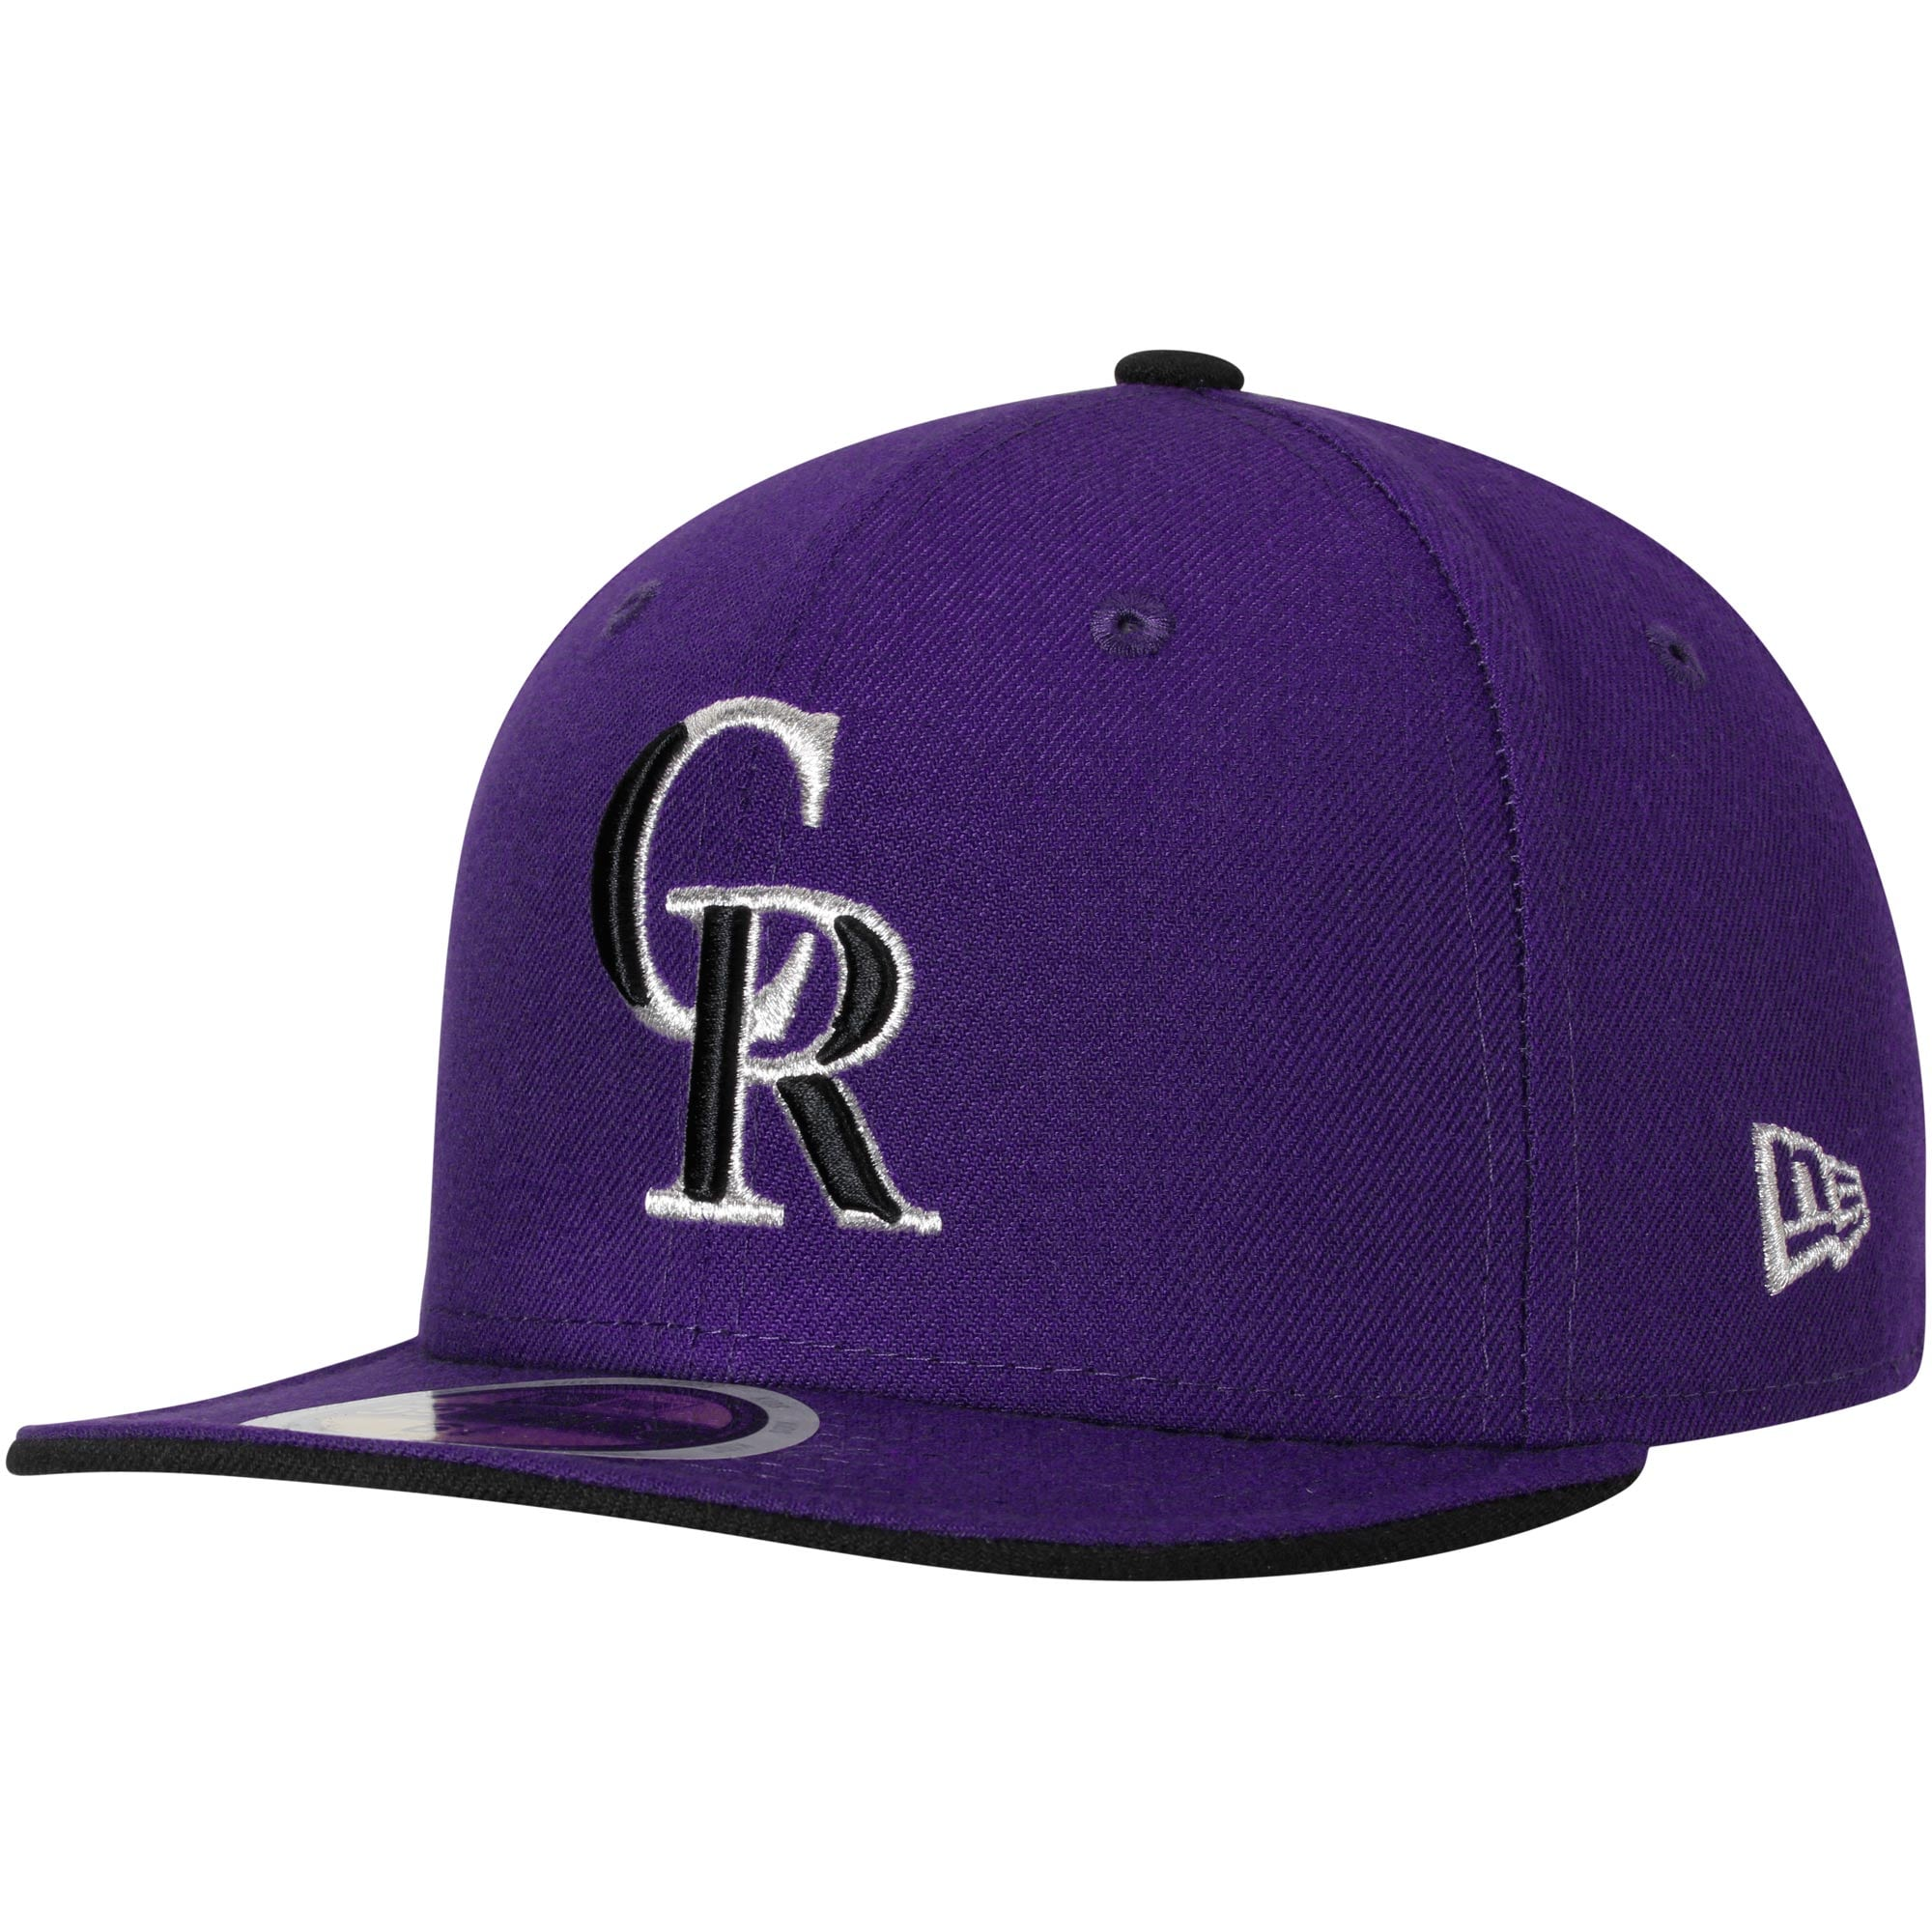 Colorado Rockies New Era Youth Authentic Collection On-Field Alternate 2 59FIFTY Fitted Hat - Purple